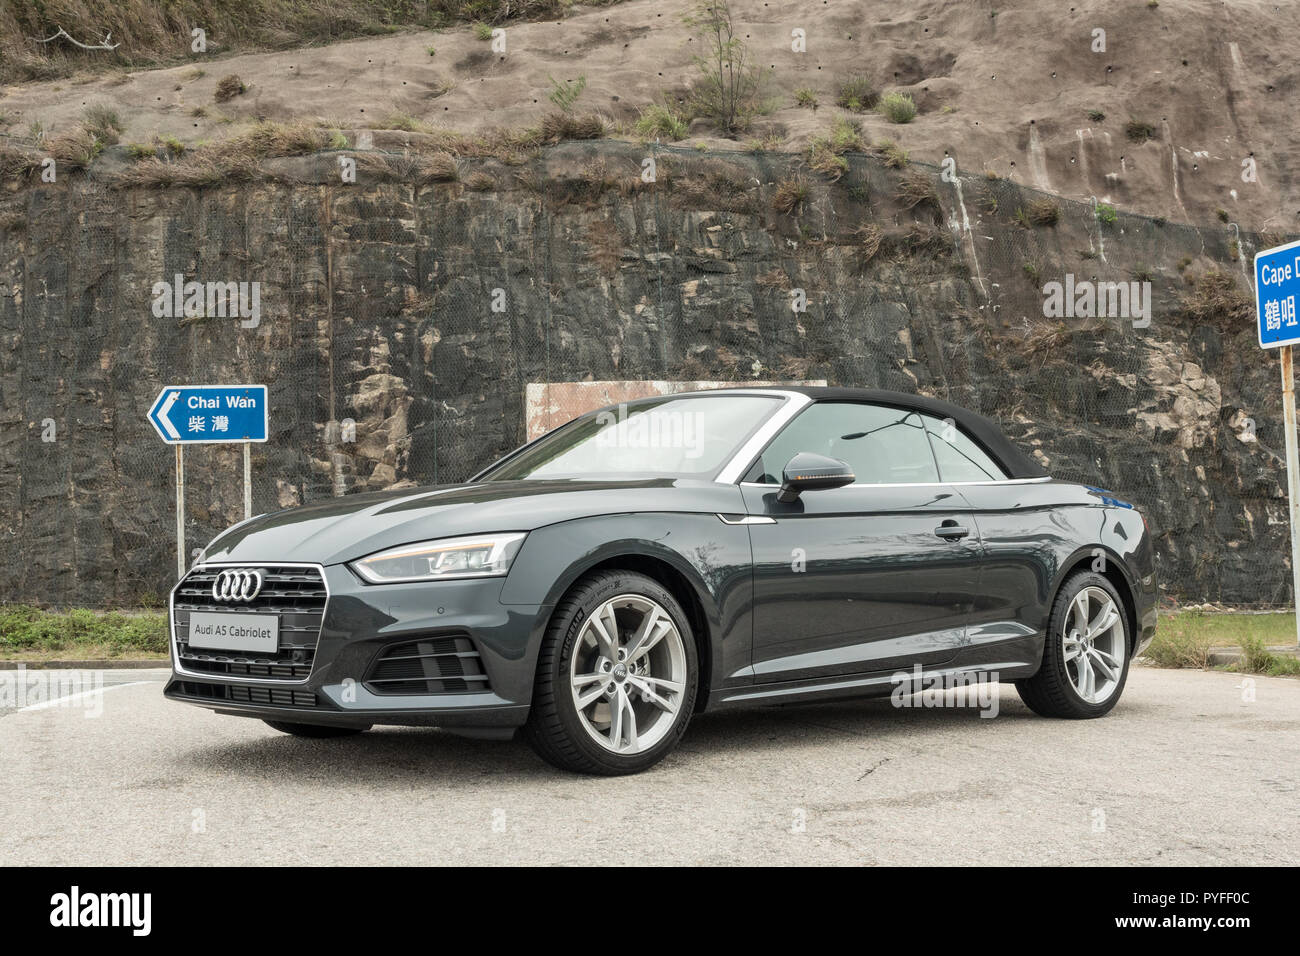 Hong Kong China April 20 2018 Audi A5 Coupe 2018 Test Drive Day